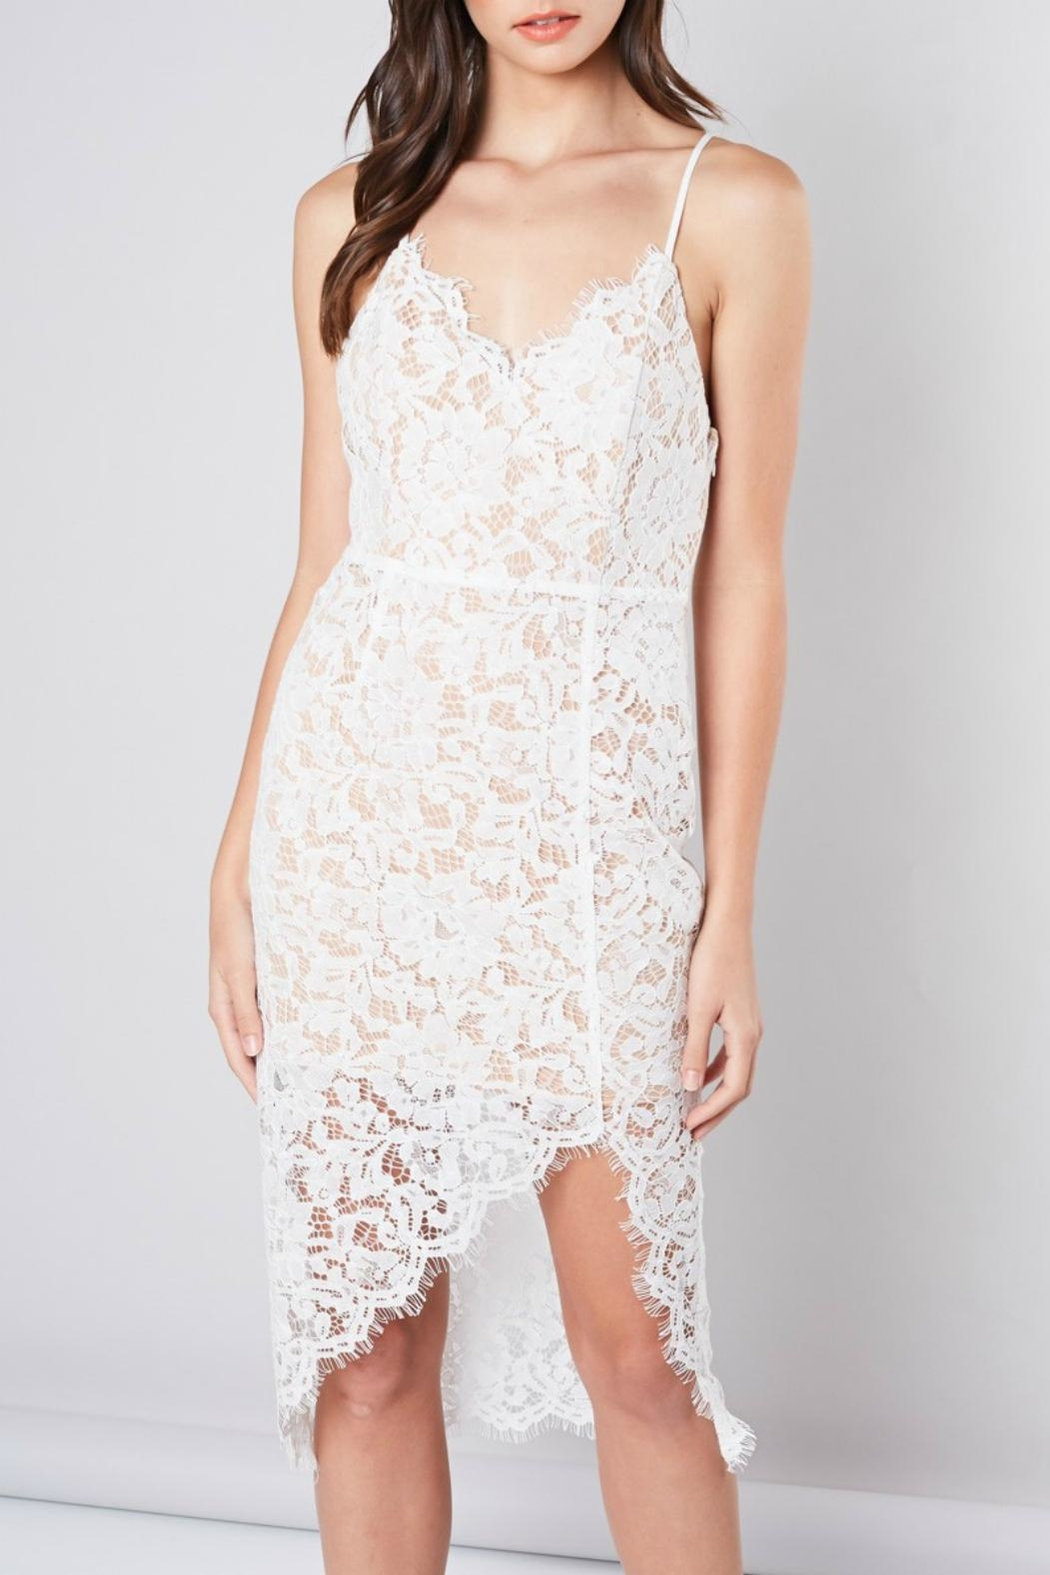 Pretty Little Things Eyelash Lace Dress - Main Image